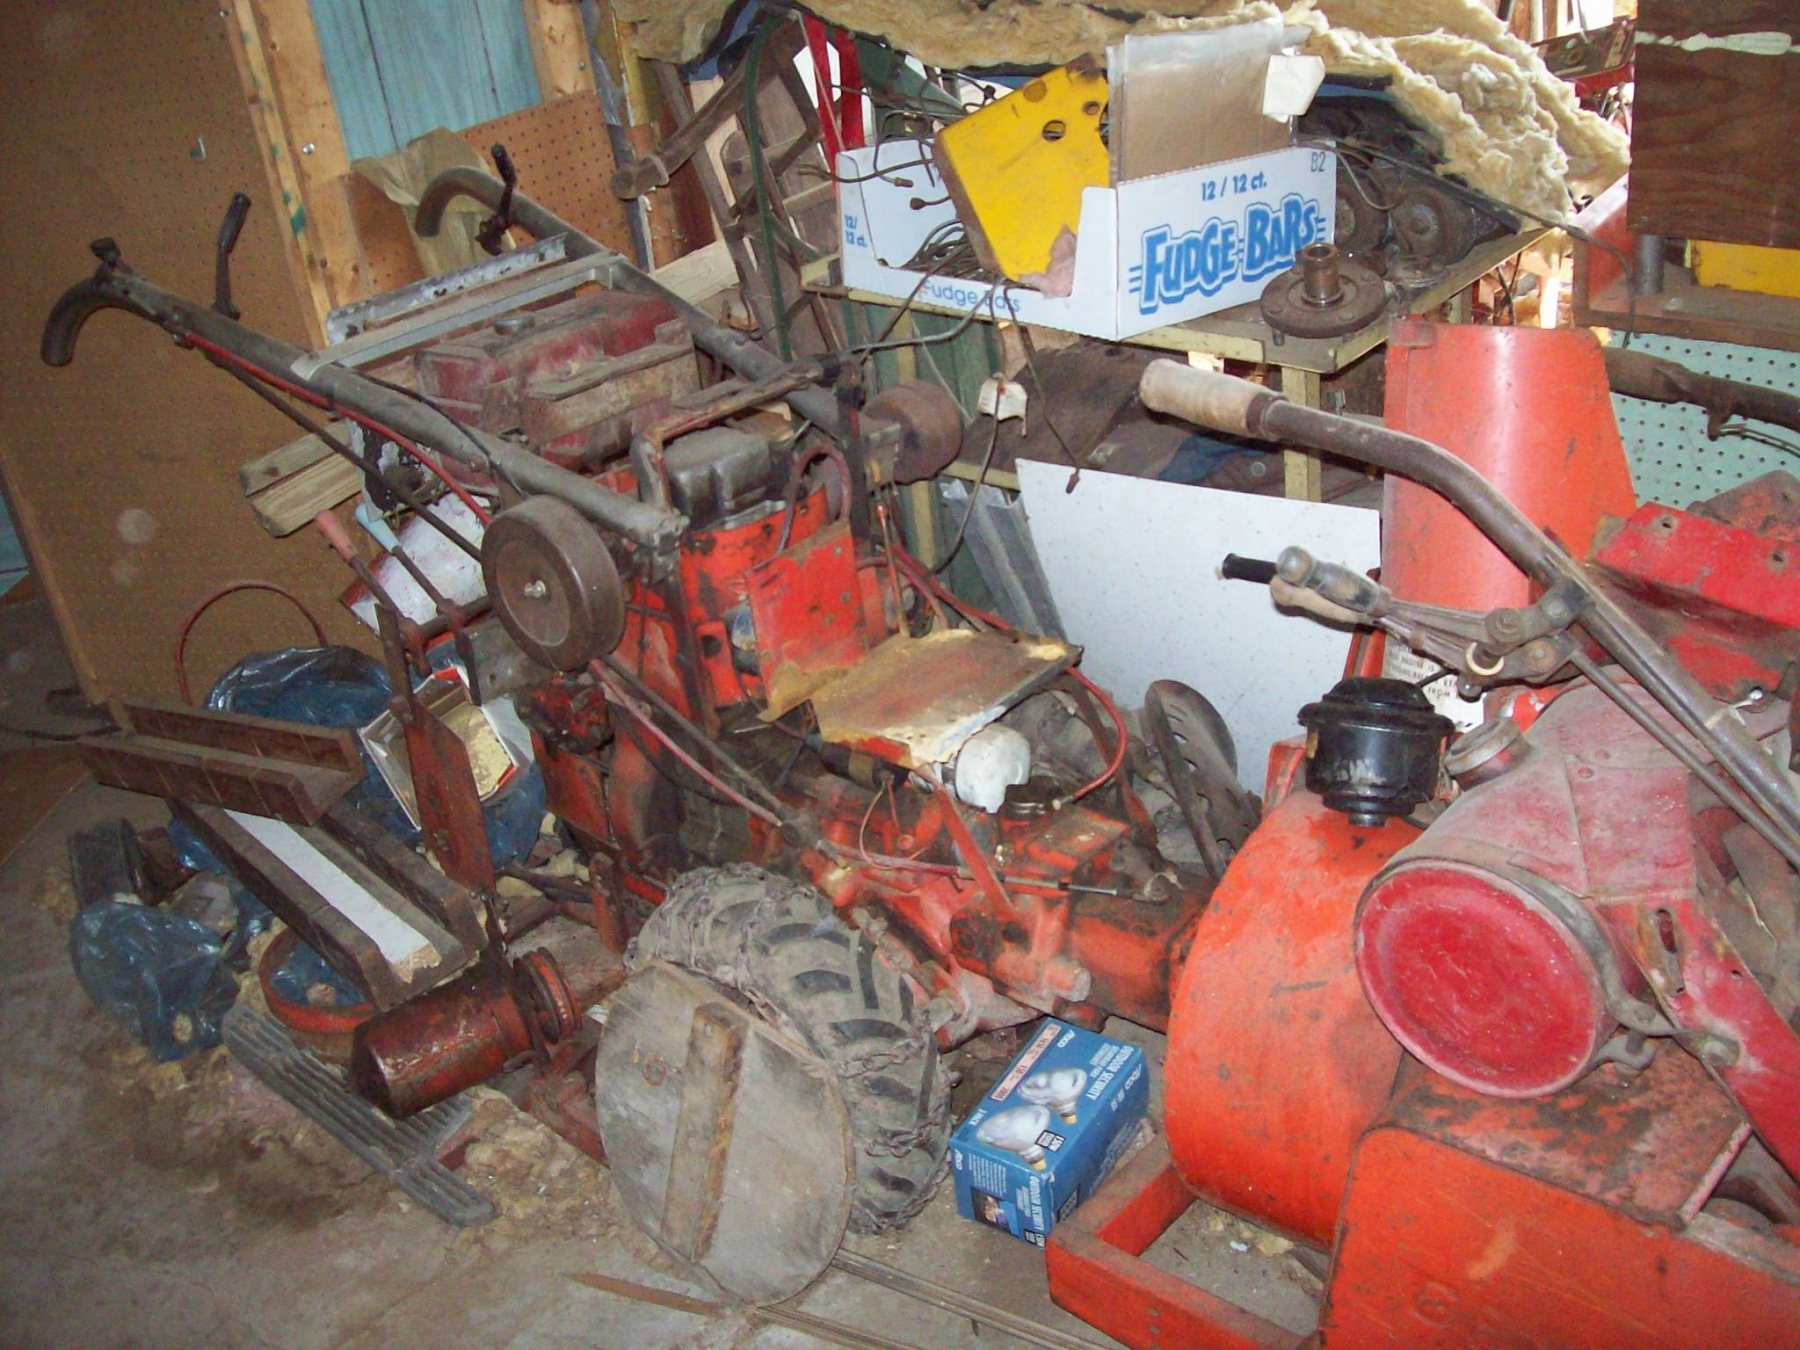 Gravely Sickle Bar Mower For Sale Gravely Sickle Bar Mower